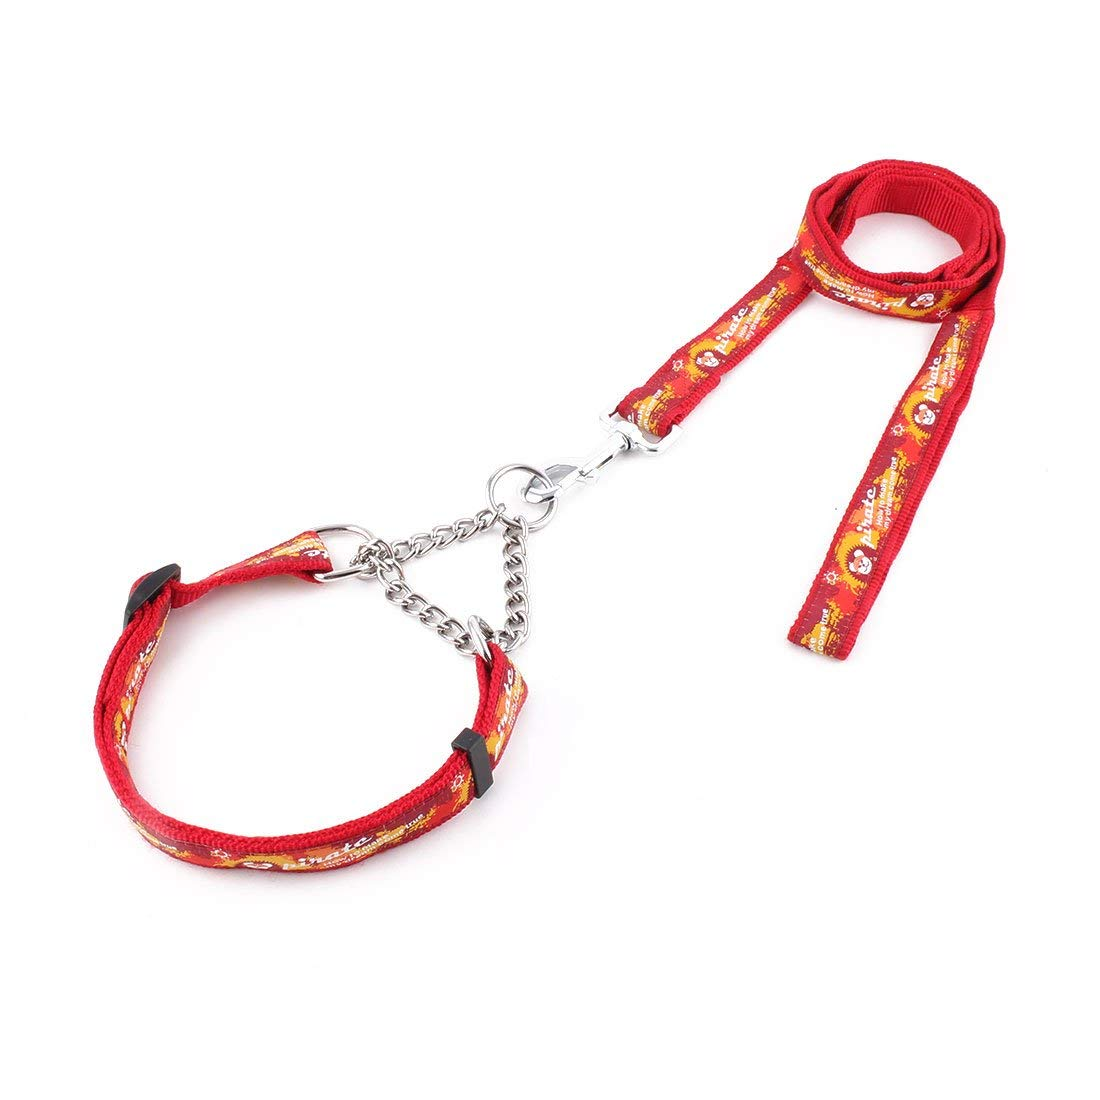 Nylon Pet Dog Pirate Pattern Neck Collar Training Lead Traction Rope Leash Red